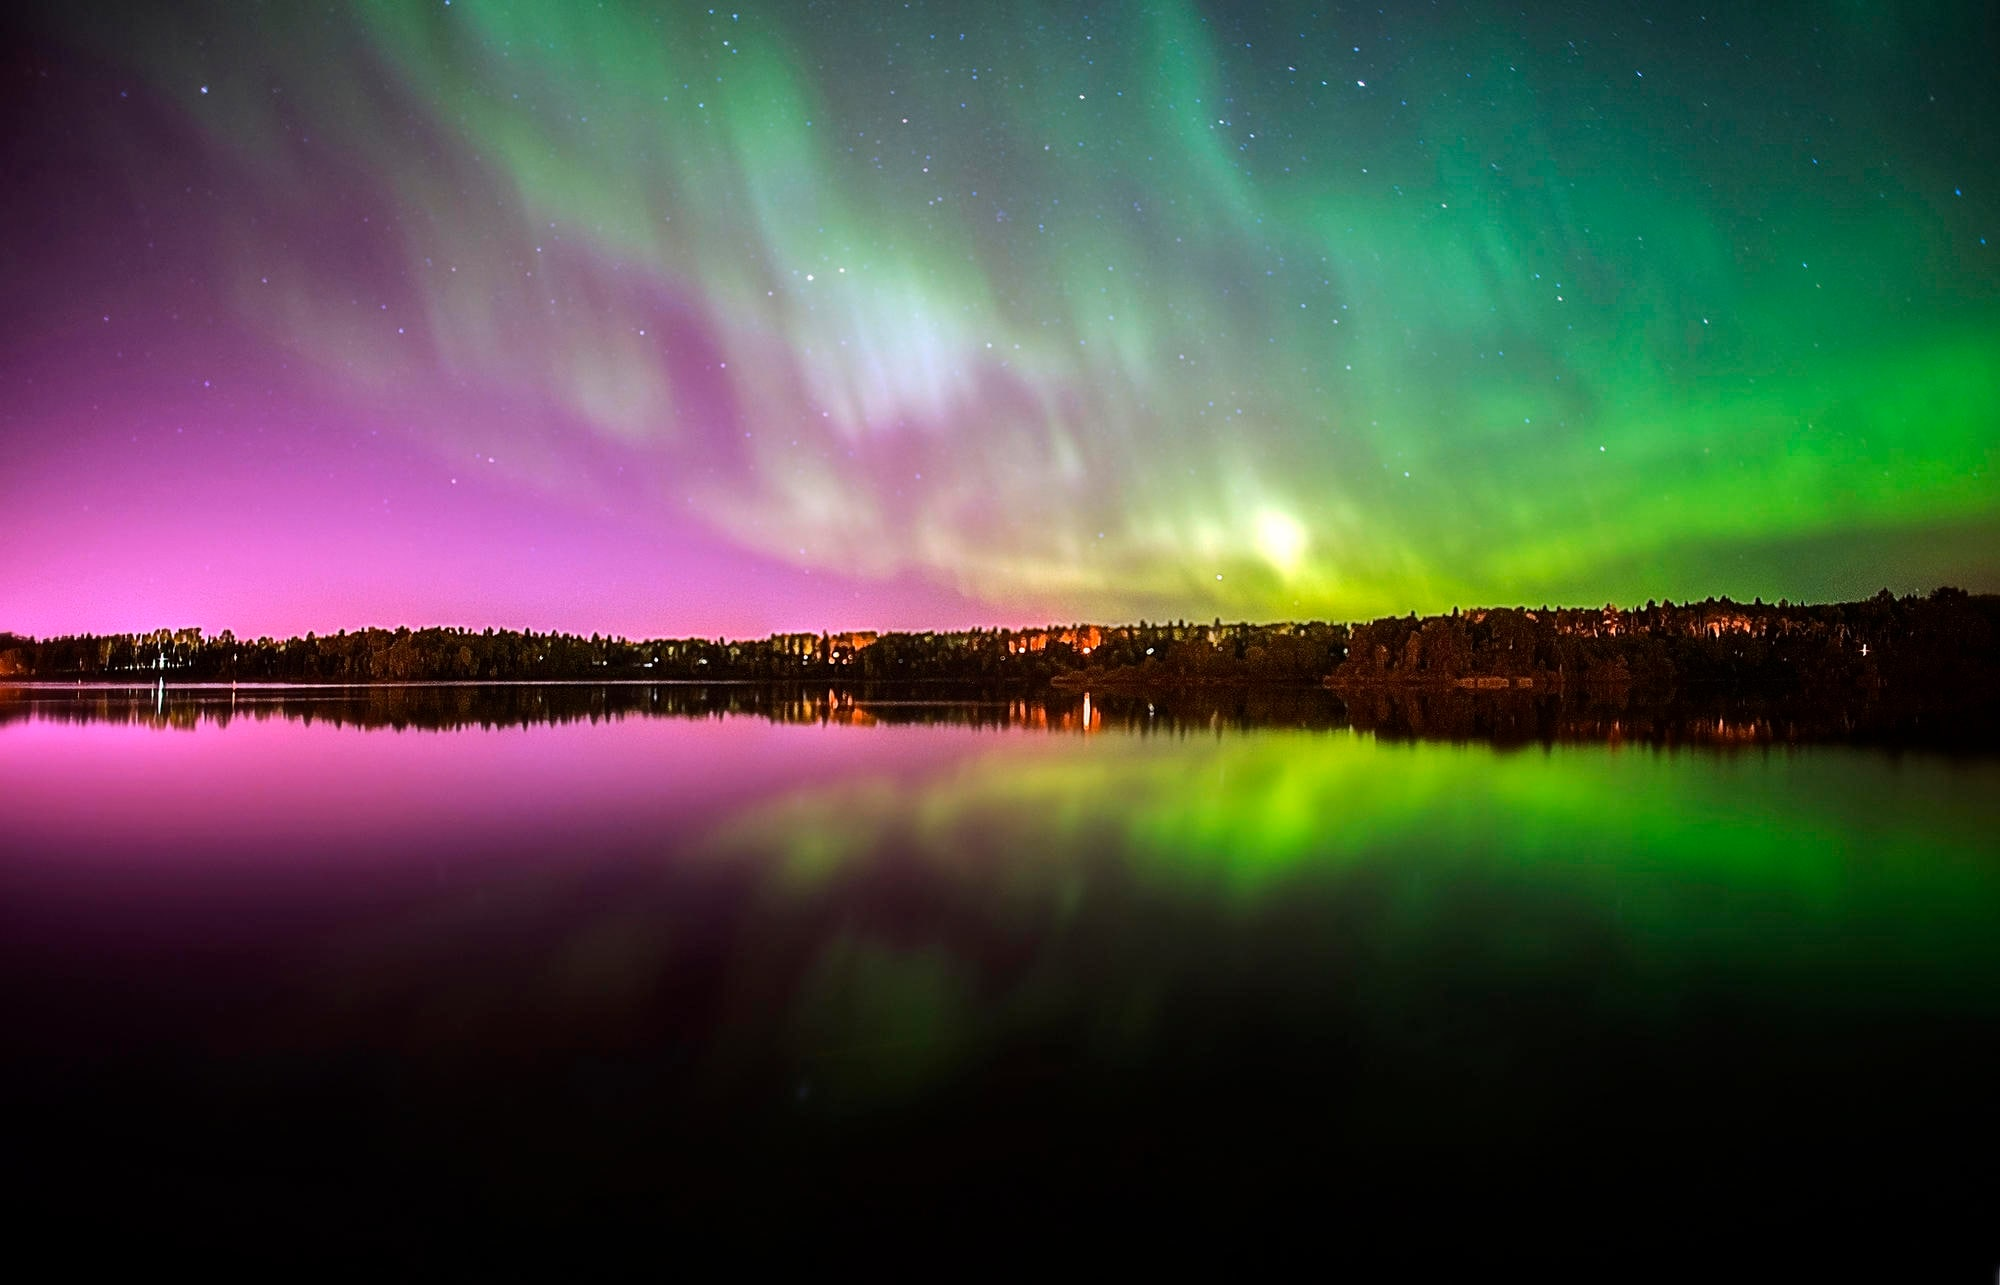 <strong>Kirkenes, Norway:</strong> Fly off to the Scandinavian nation to witness the mesmerising Northern Lights, while cooling off your heels on a snow clad ground. Remember to pack your winter clothes and a tent and spend the night away looking at nature's most beautiful creation.